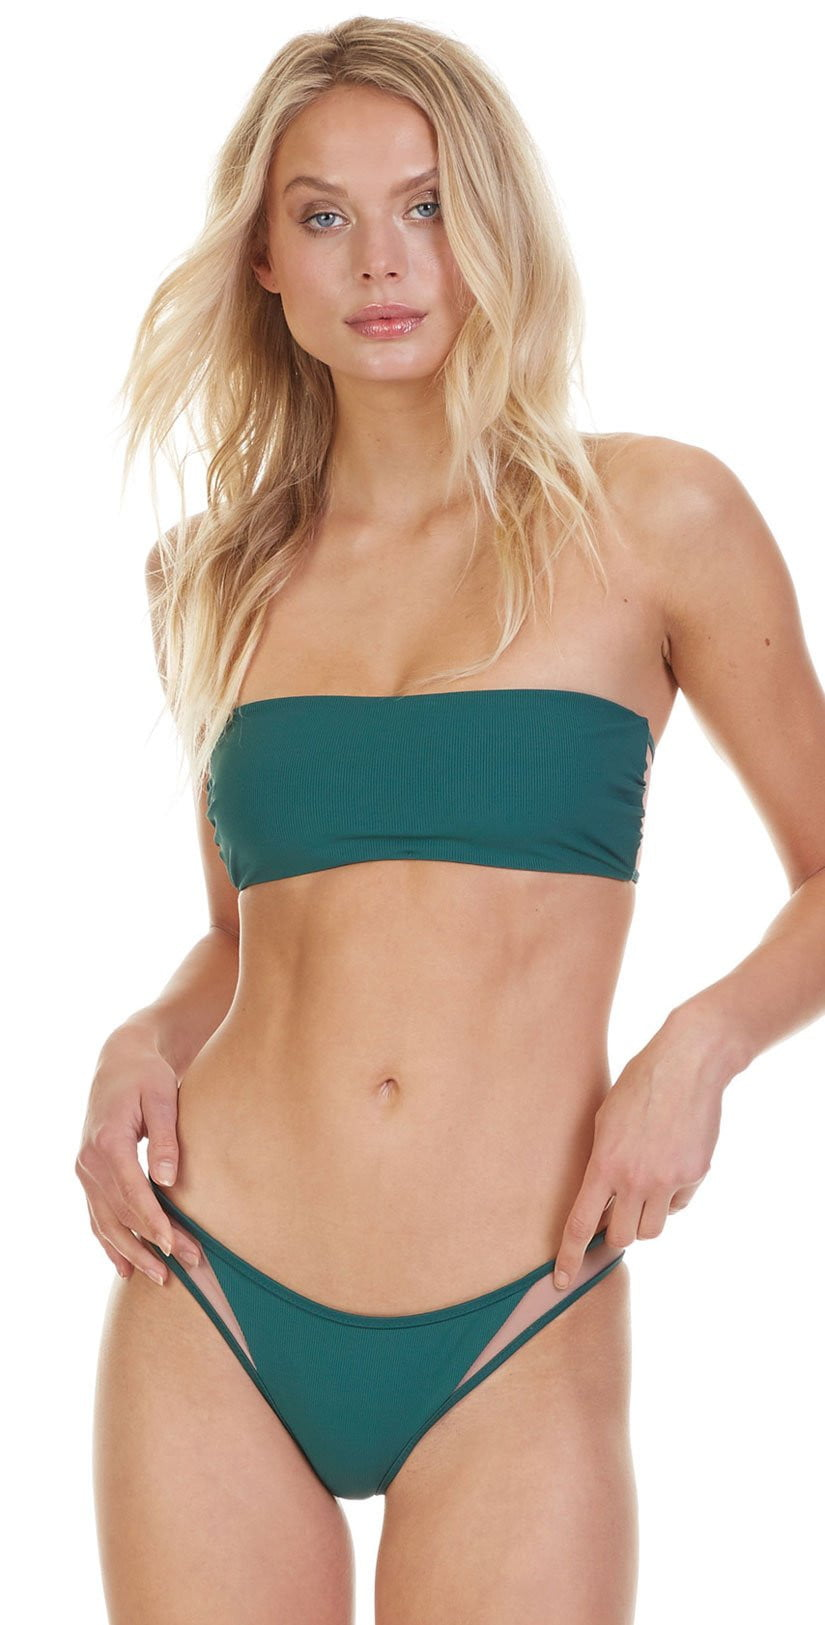 Tori Praver Fine Rib Royale Top In  Emerald 1S19STRONR-EMR front view of green bikini